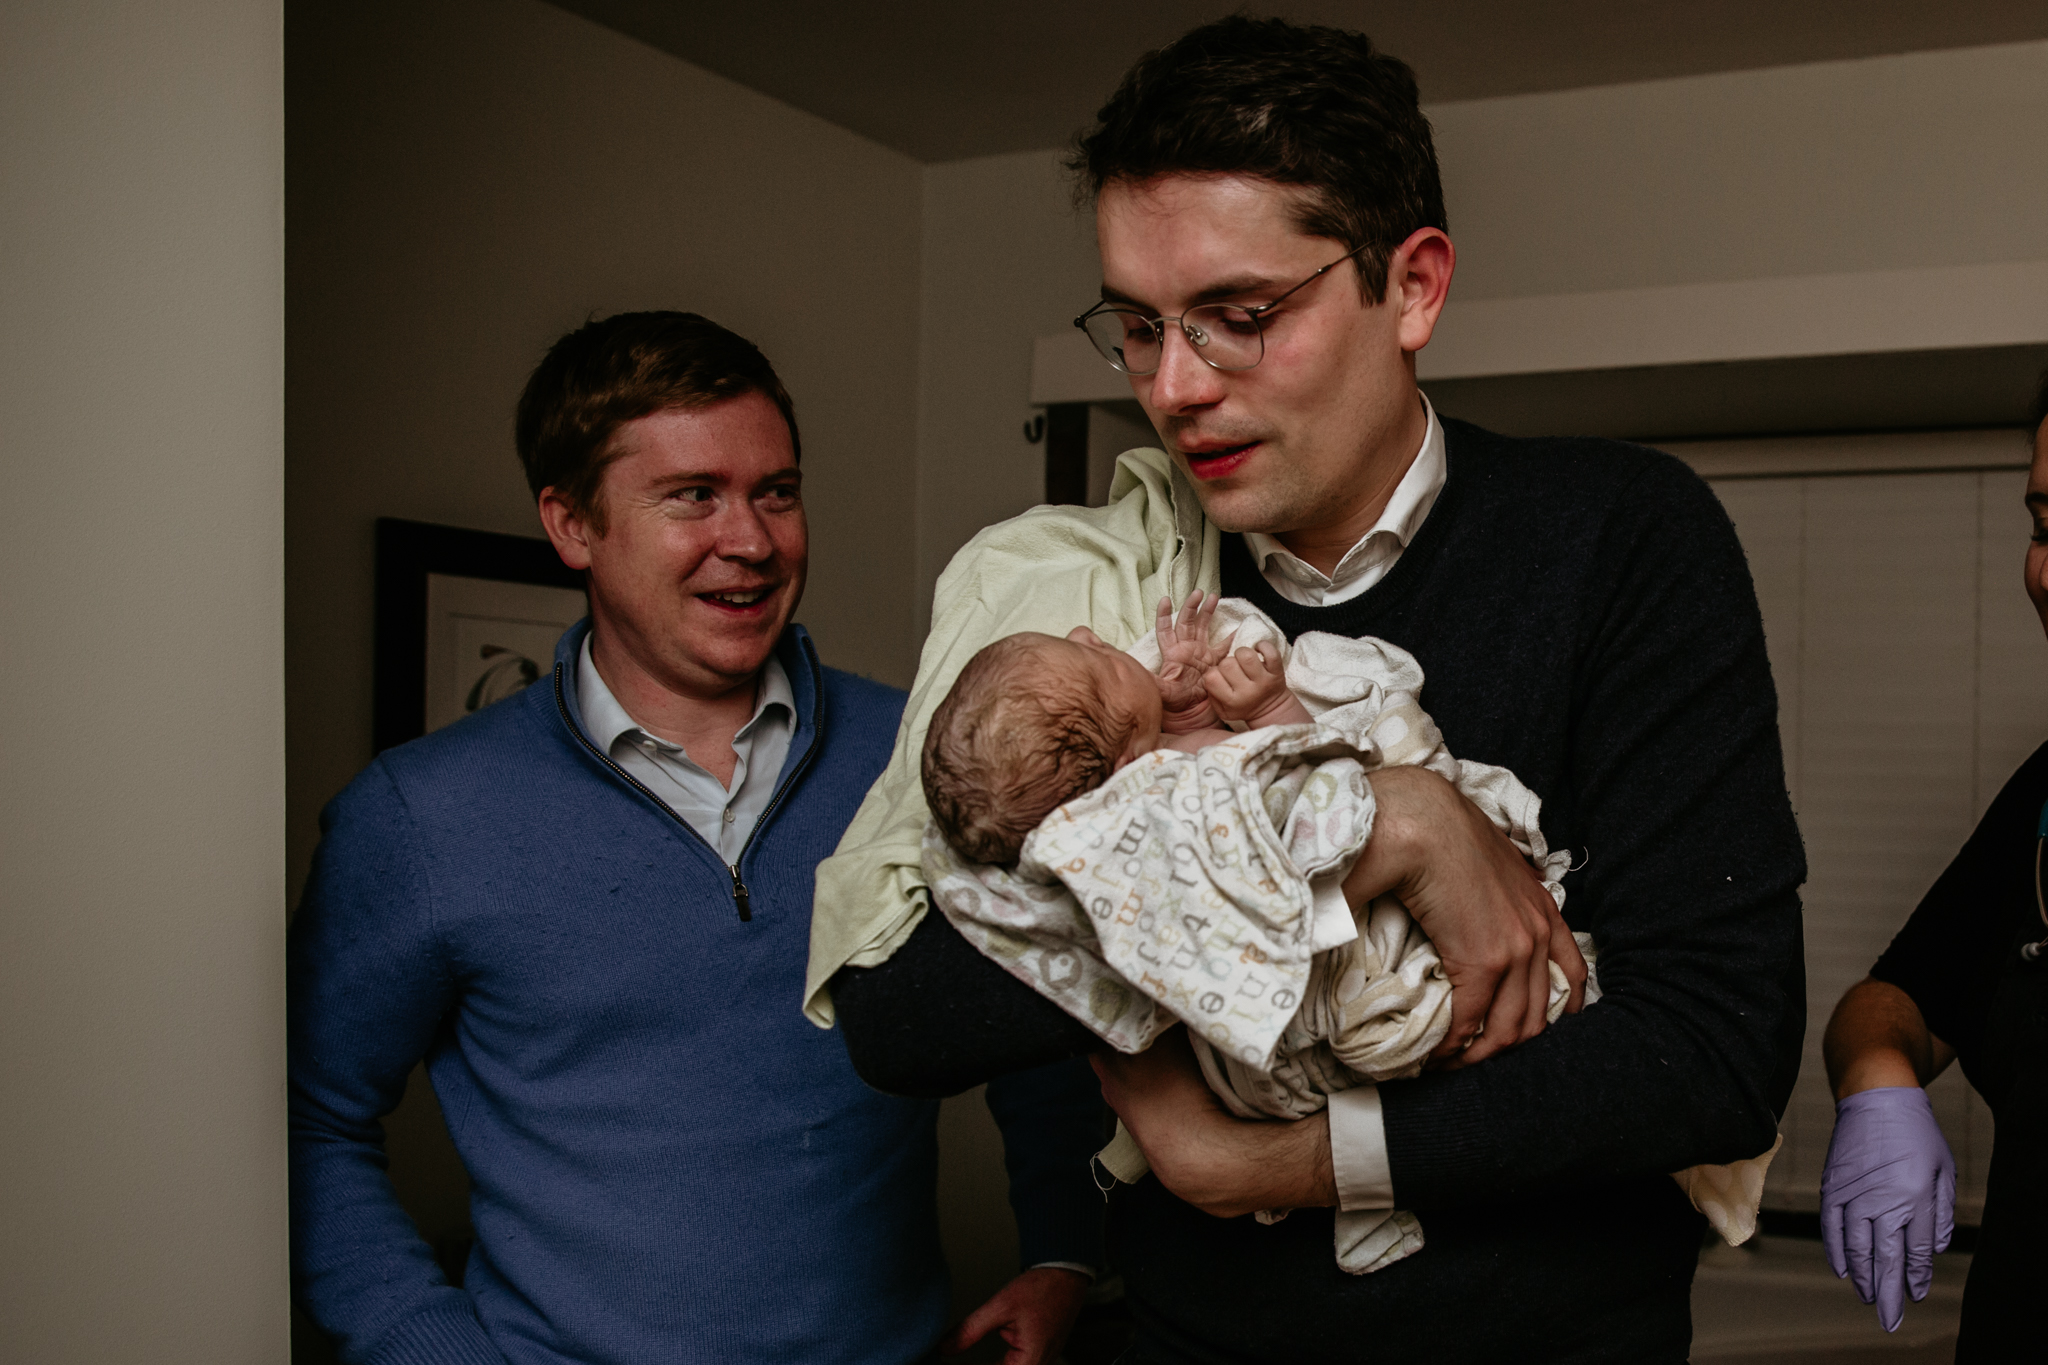 Surrogate-dad-holding-baby